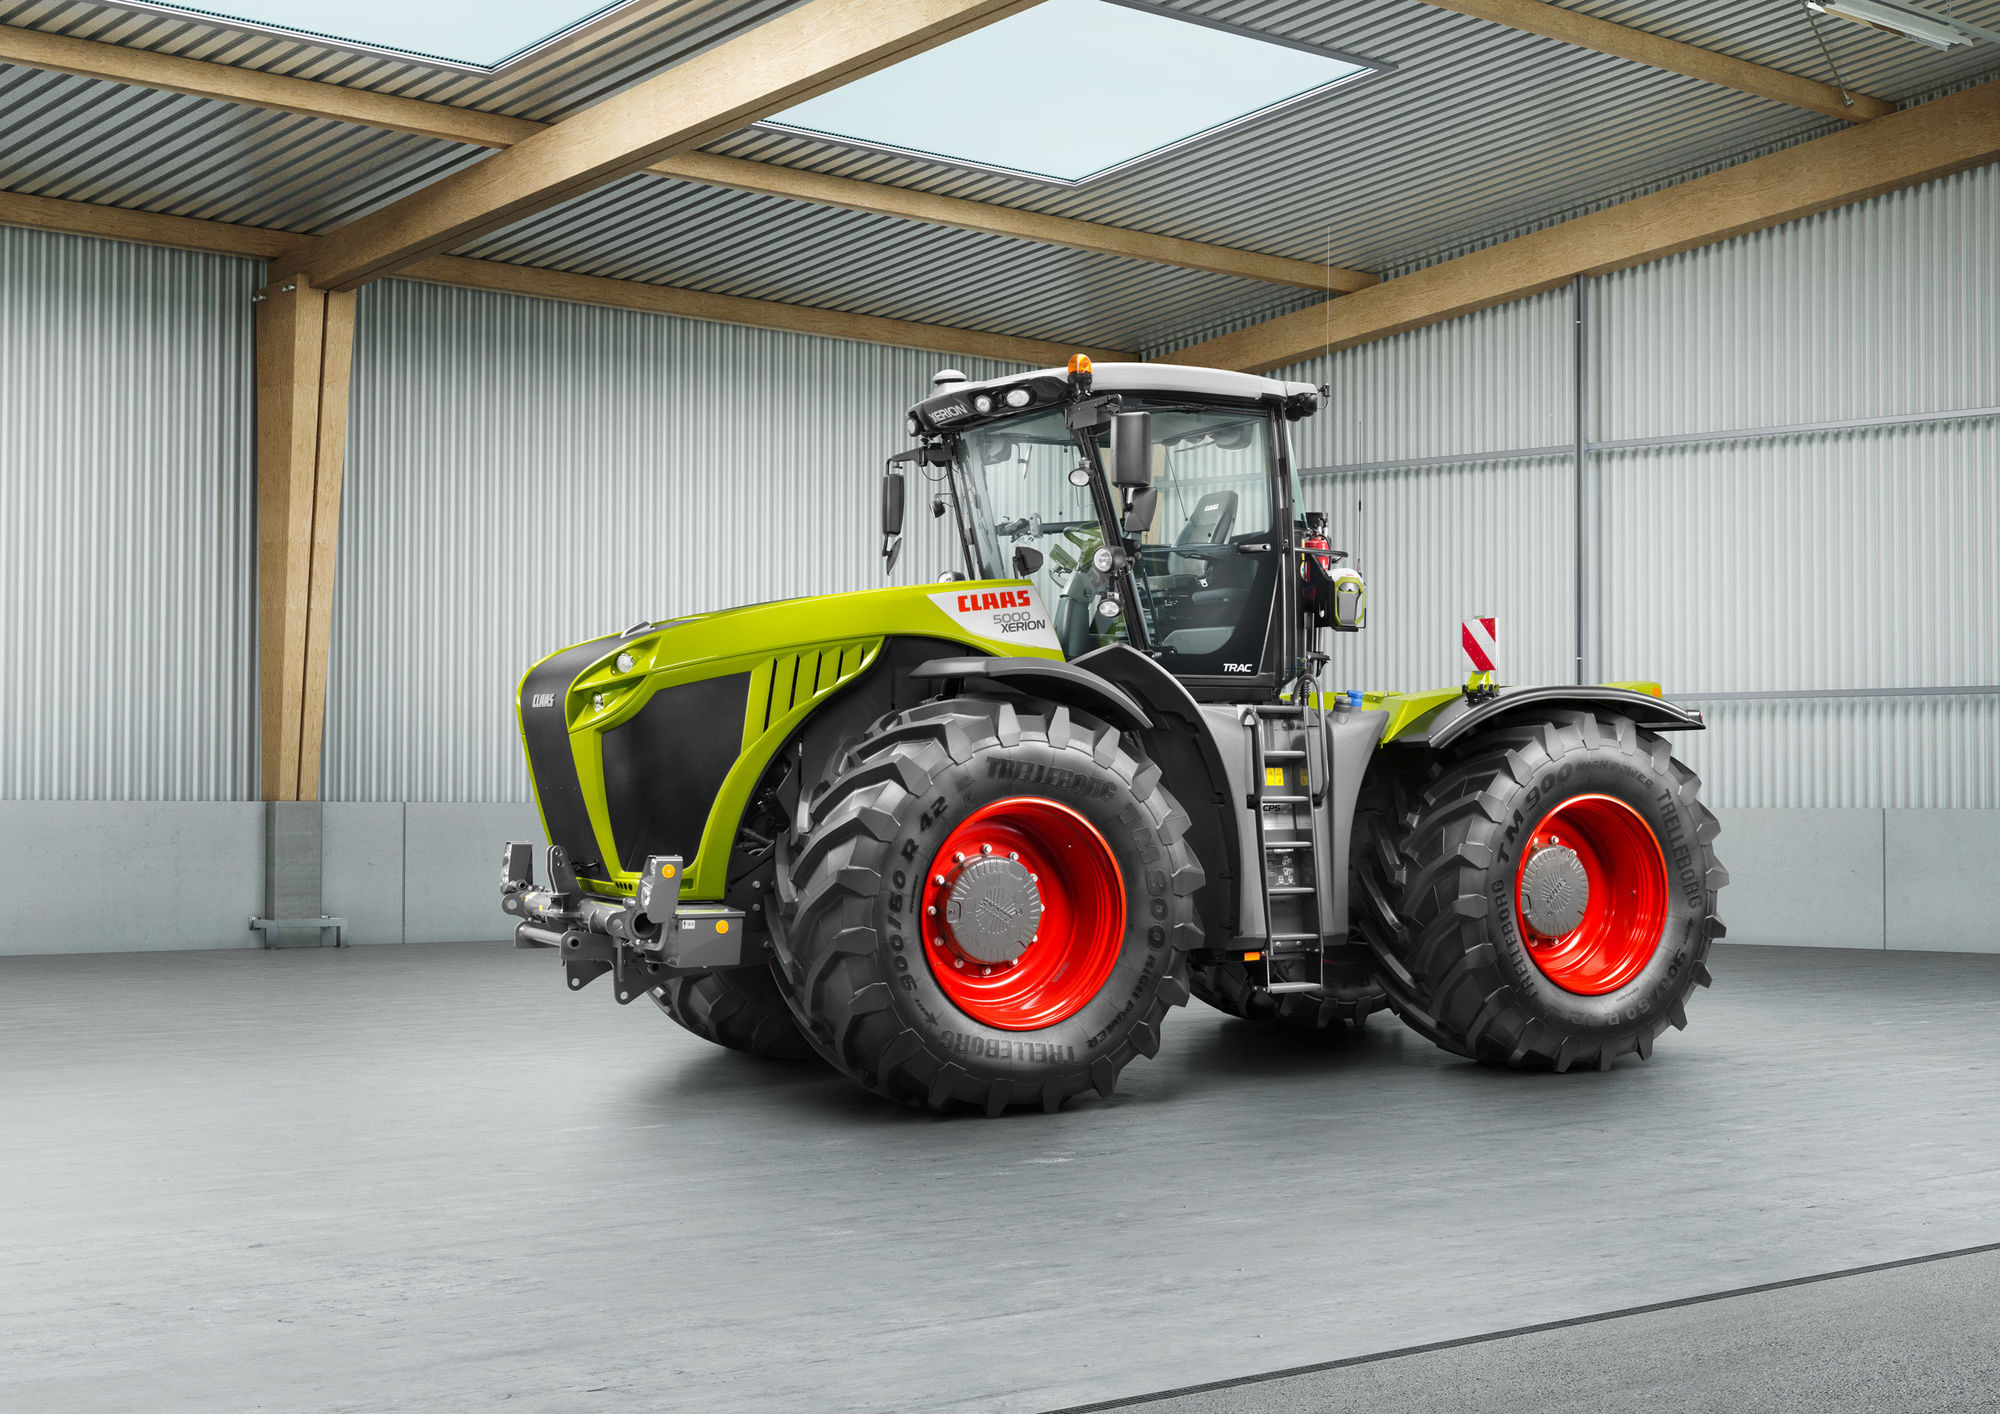 CLAAS Productshots by Stephan Bayer